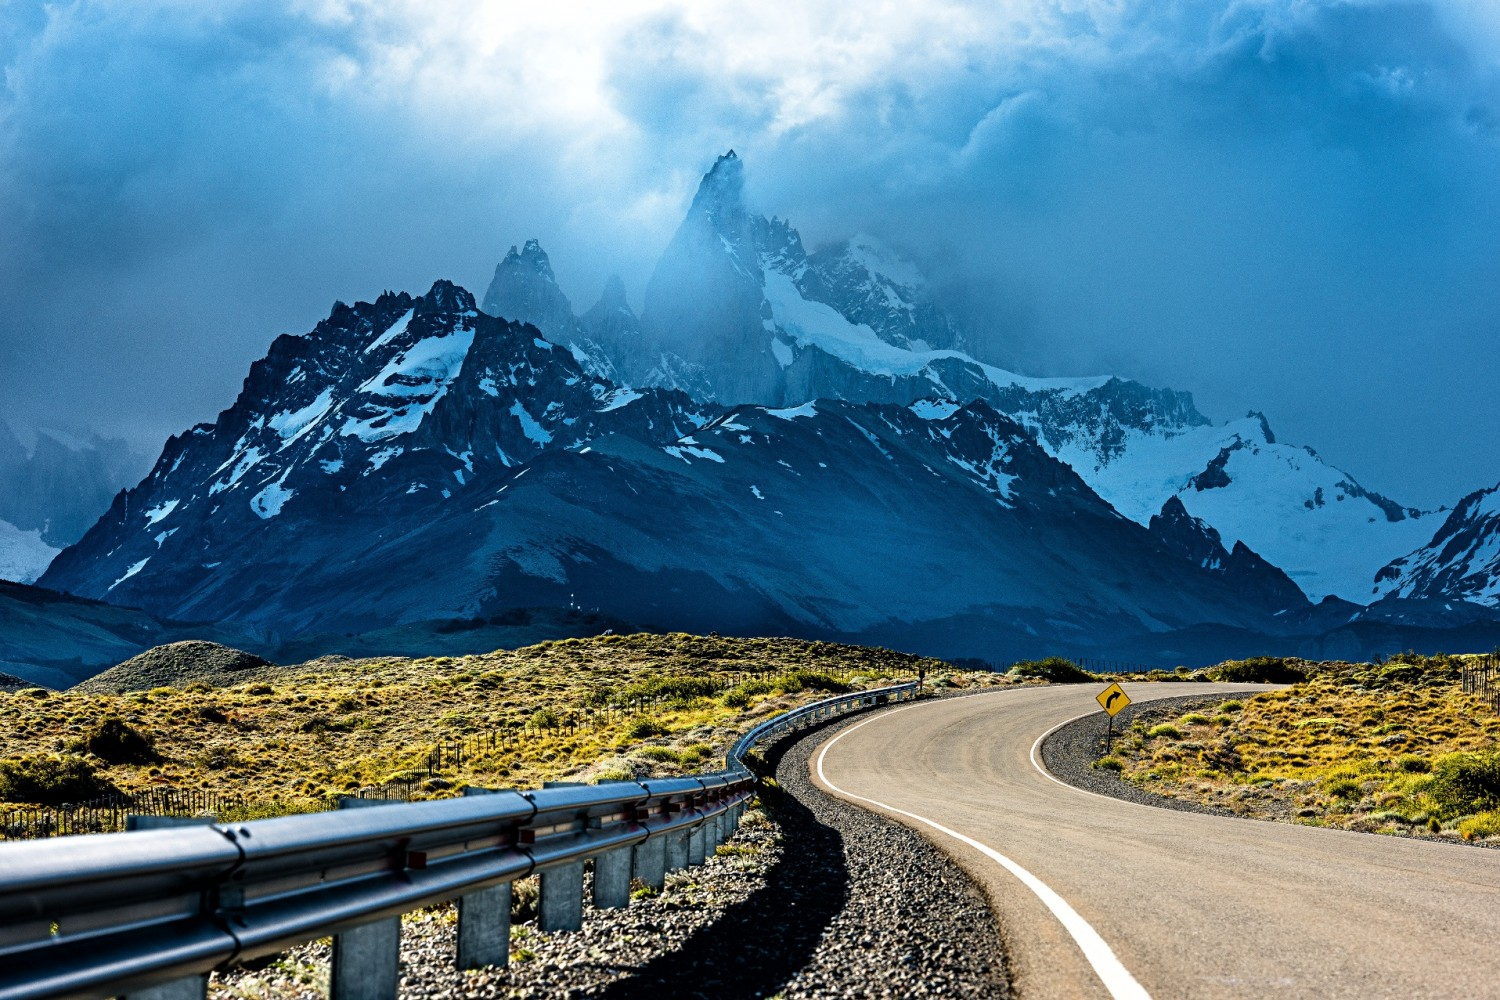 A Day in the Life: 19 Hours in Patagonia with 500px Co-Founder Evgeny Tchebotarev